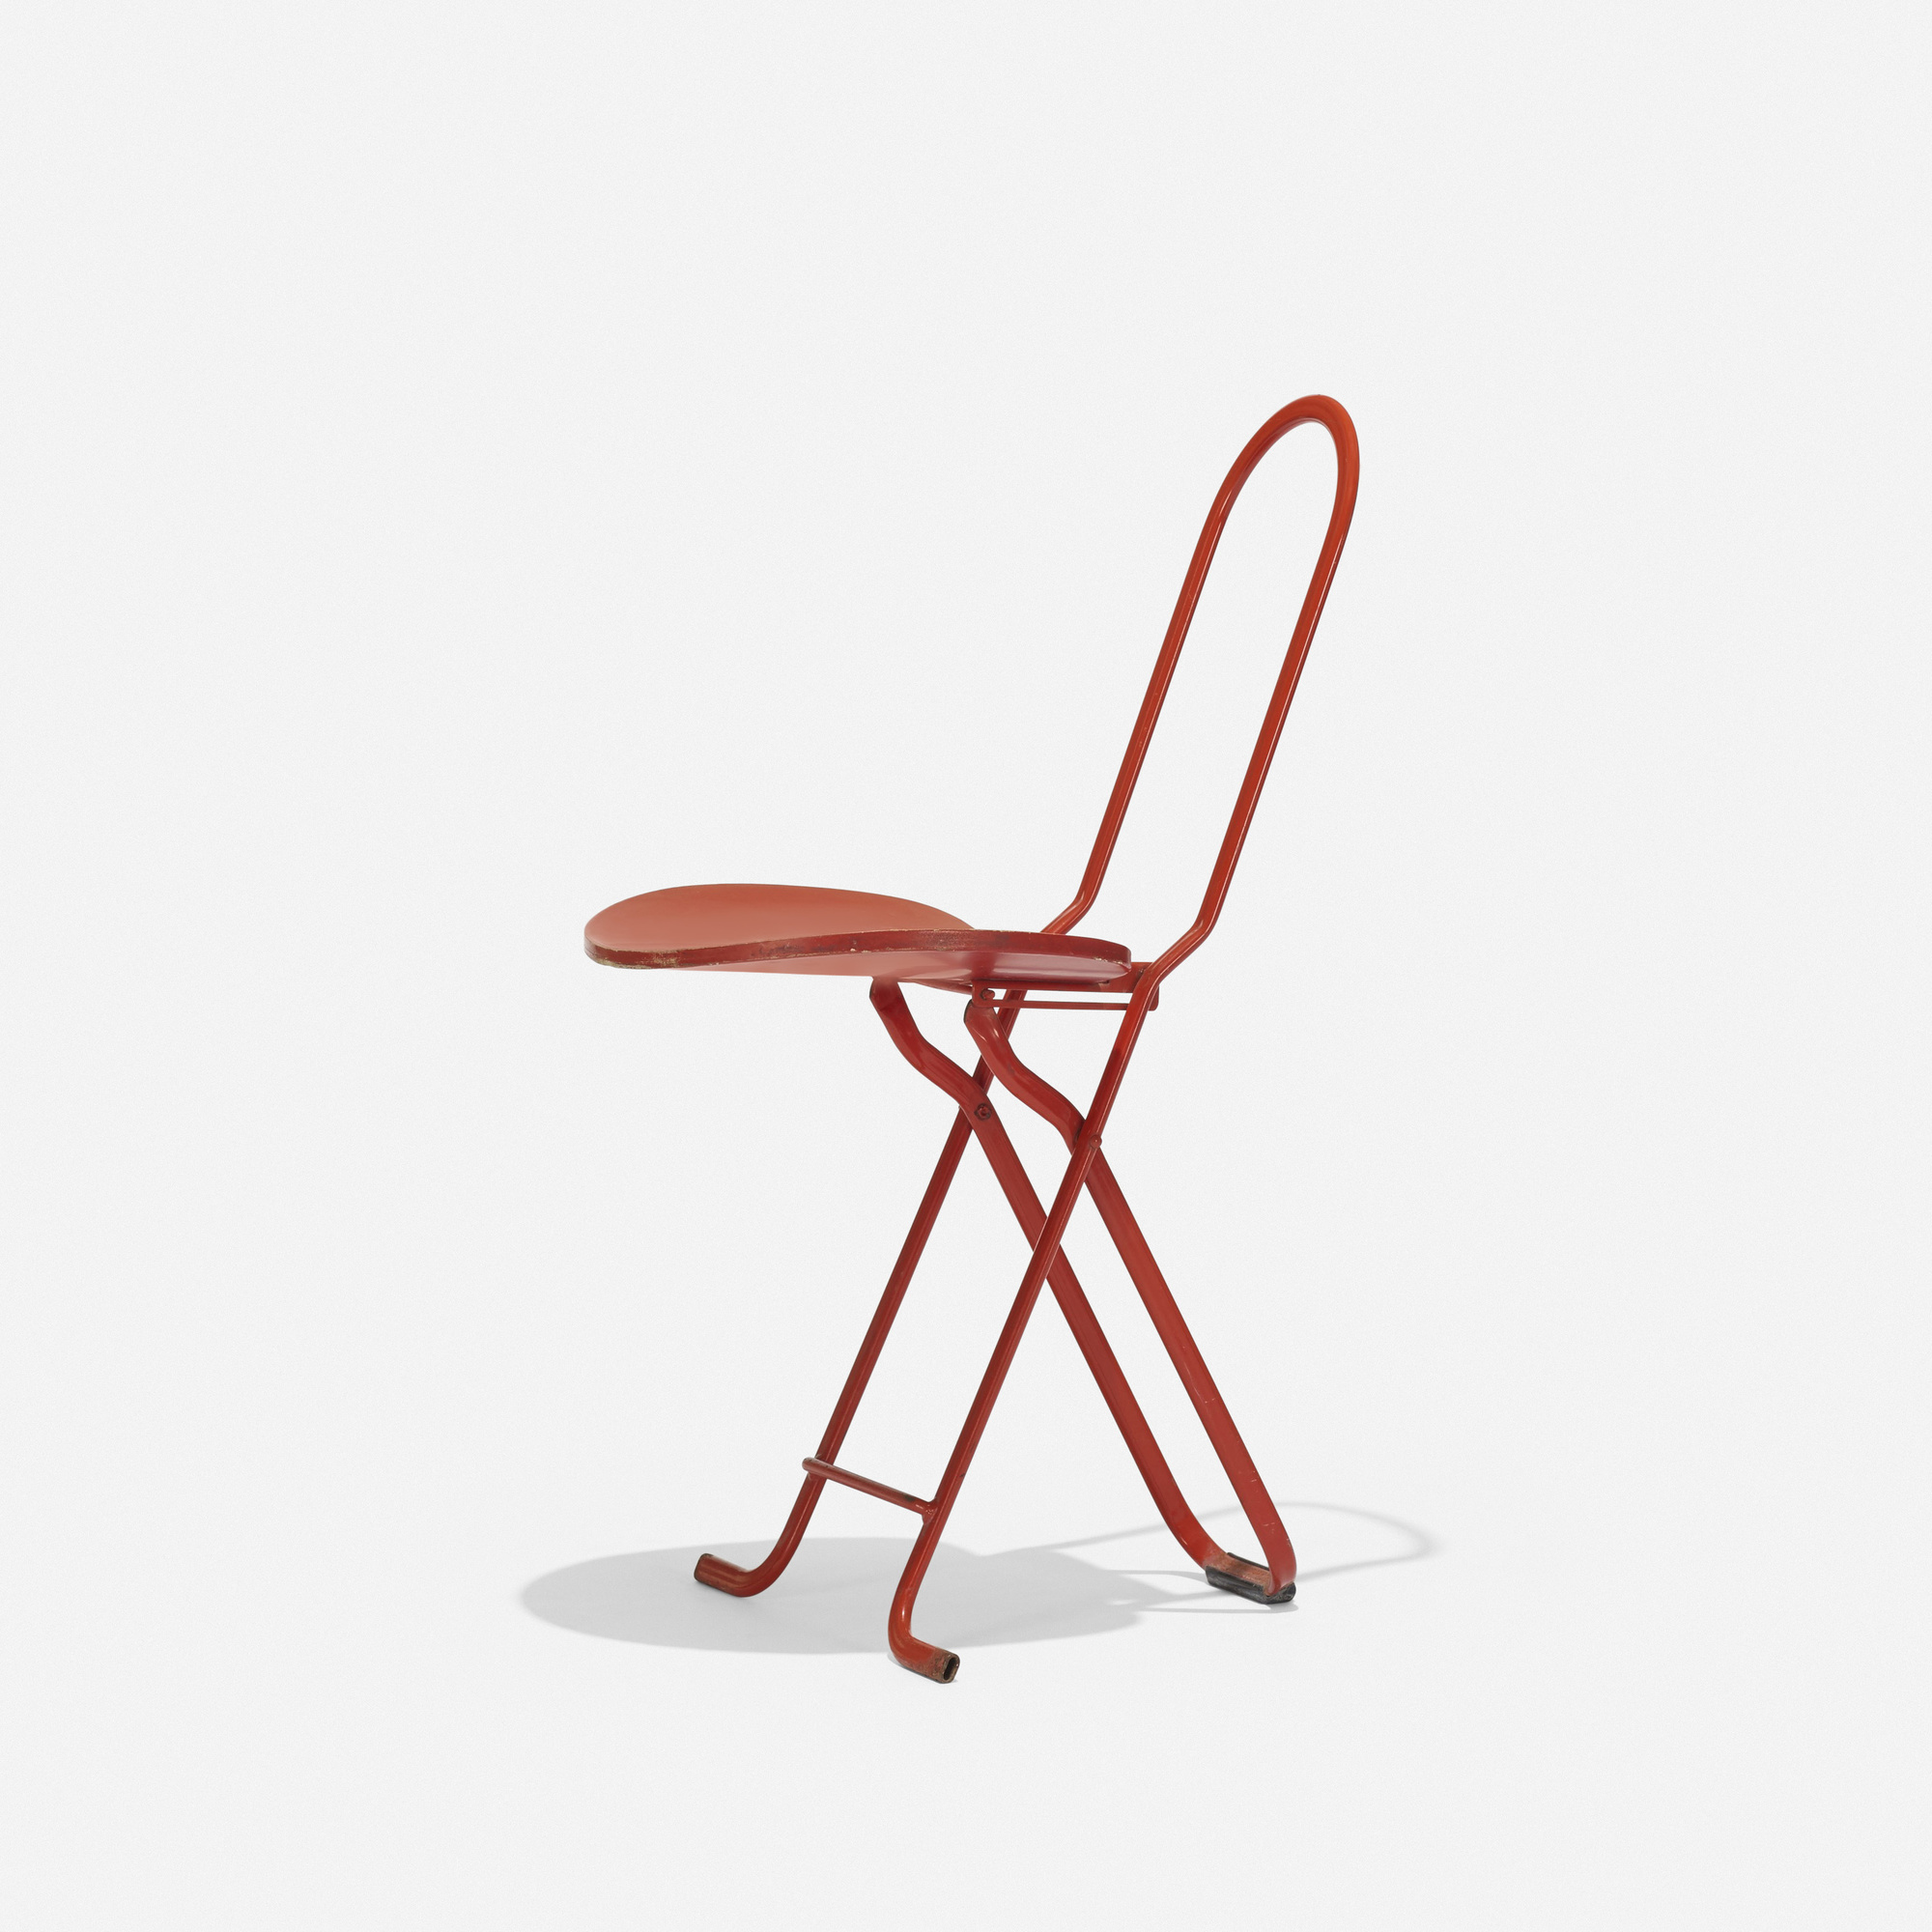 337: Gastone Rinaldi / Dafne folding chair (3 of 3)